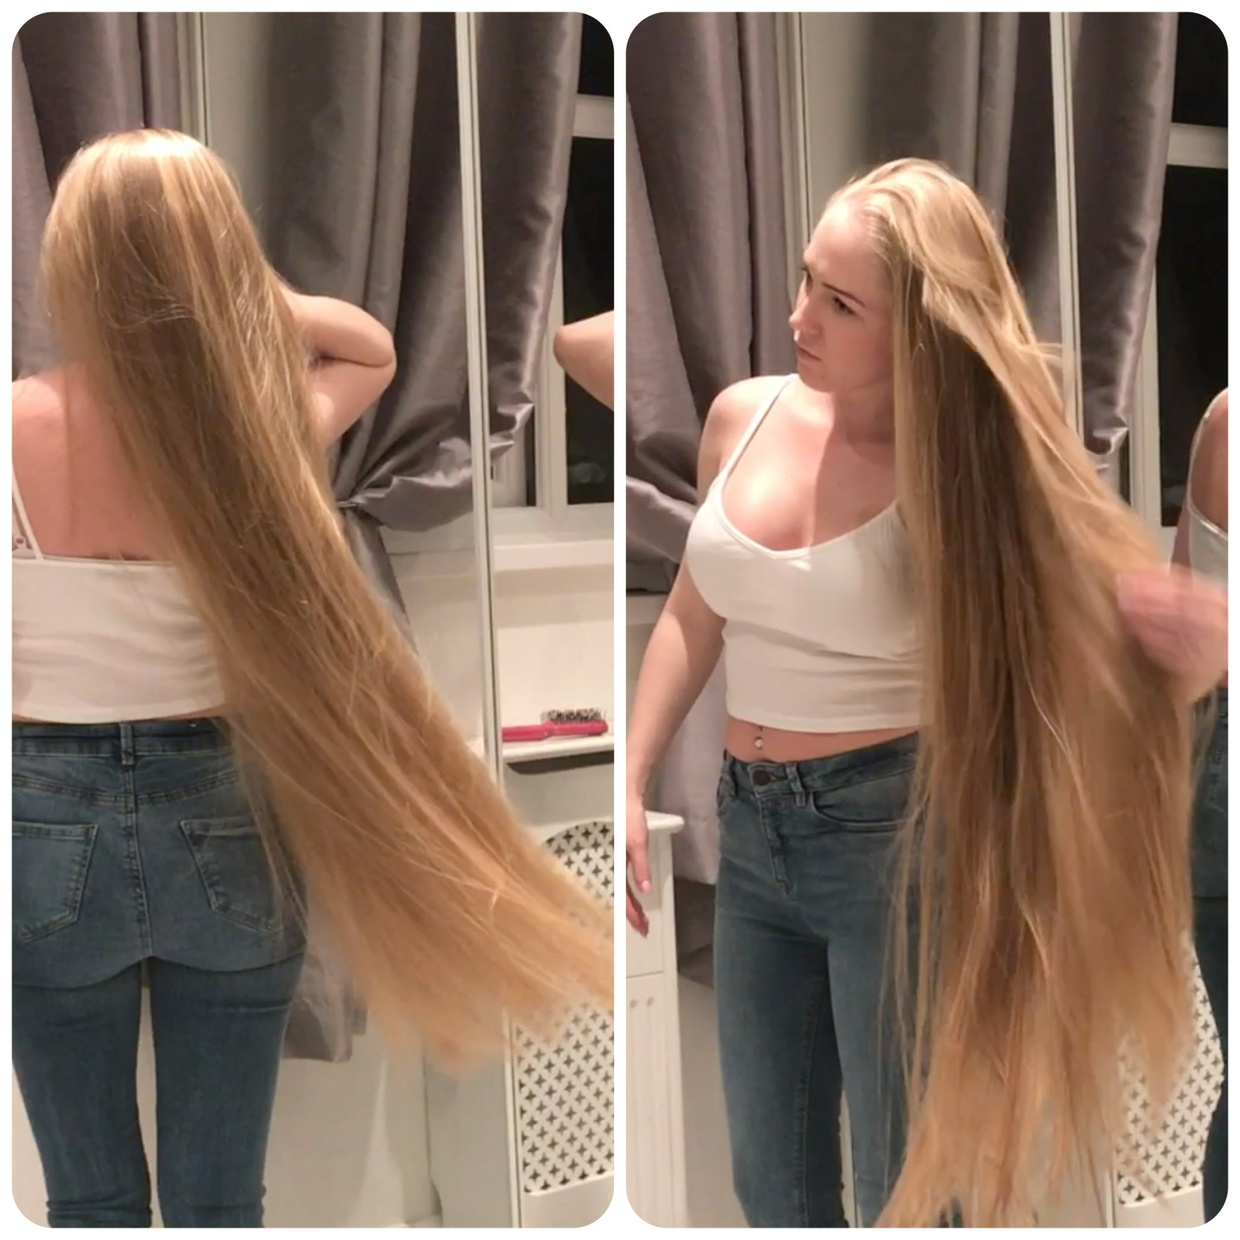 VIDEO - 3 kinds of hairplay